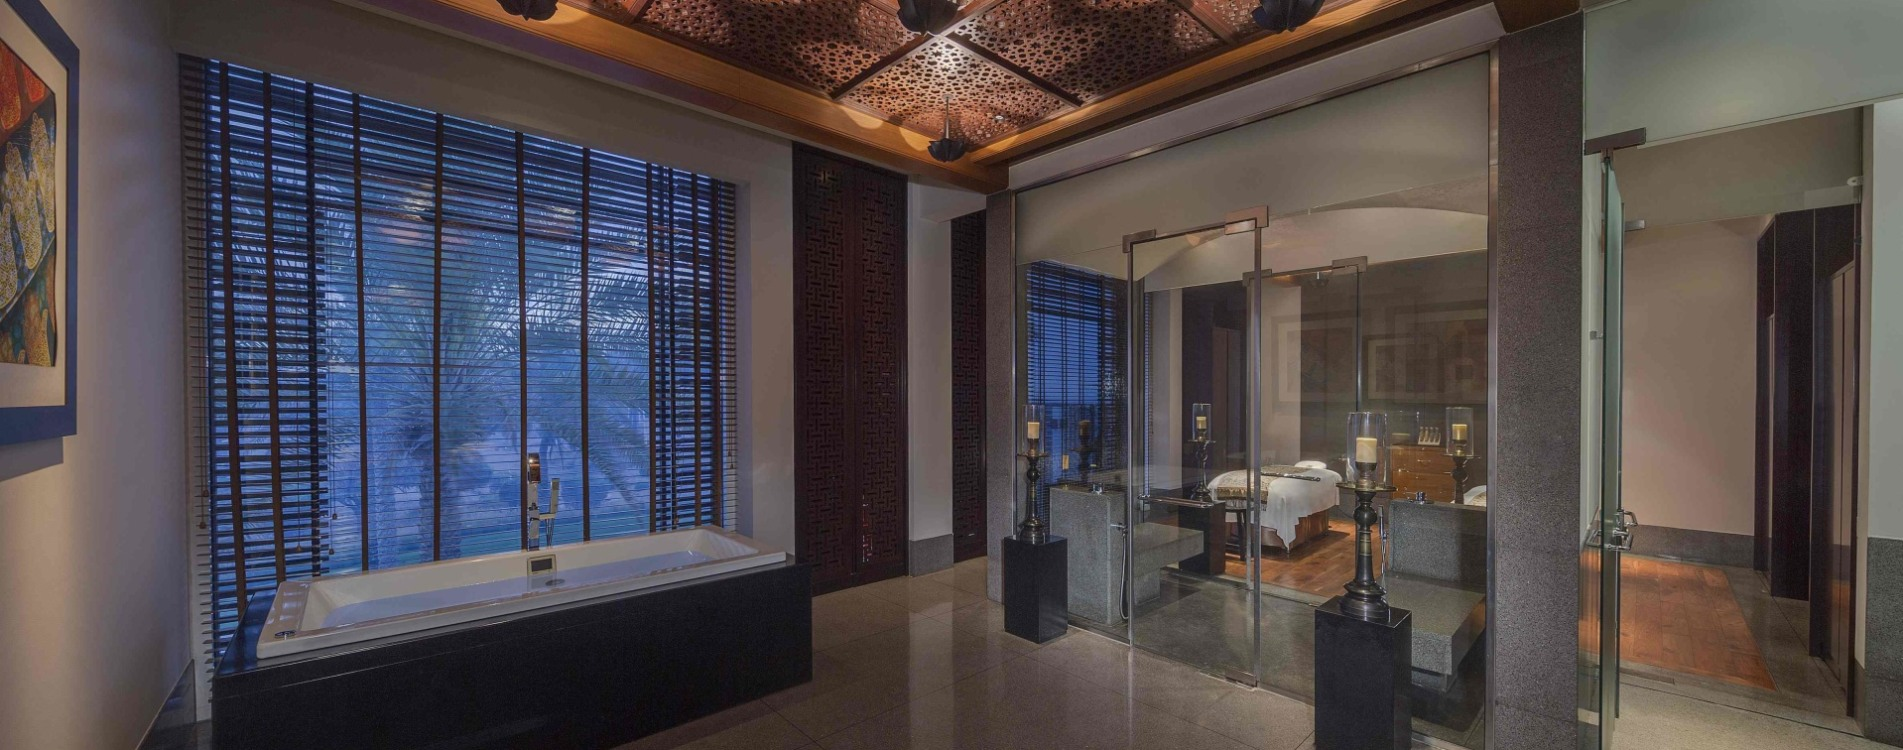 The-Chedi-Muscat-Wellness-The-Spa-Interior-Oman.jpg